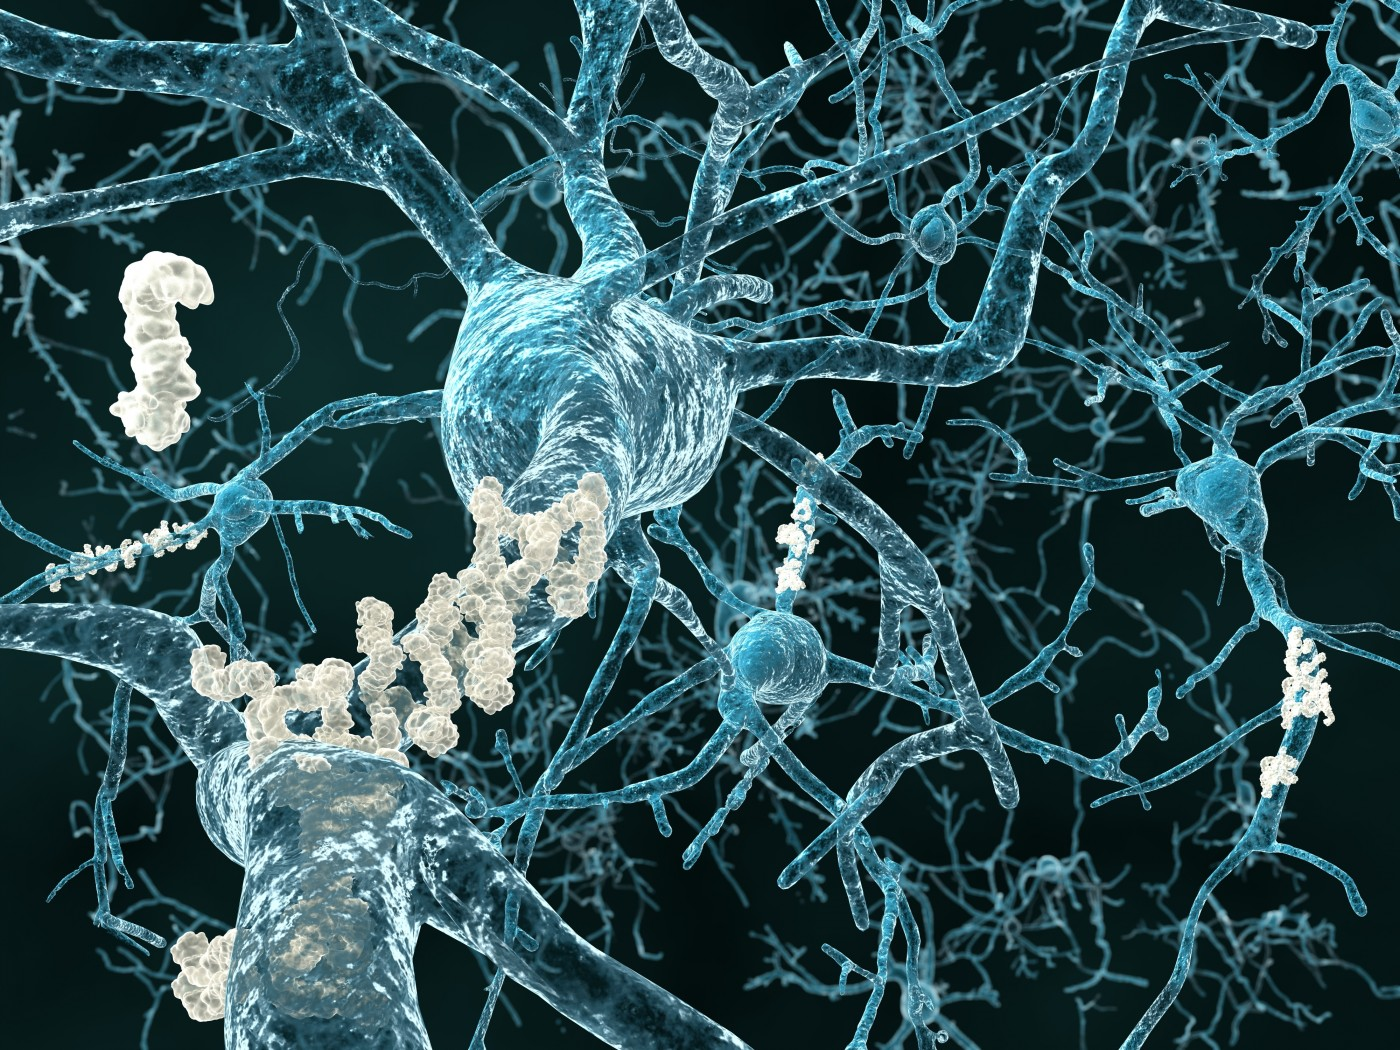 Novel Mechanism Involving Beta-Amyloid Protein Linked to Alzheimer's Disease